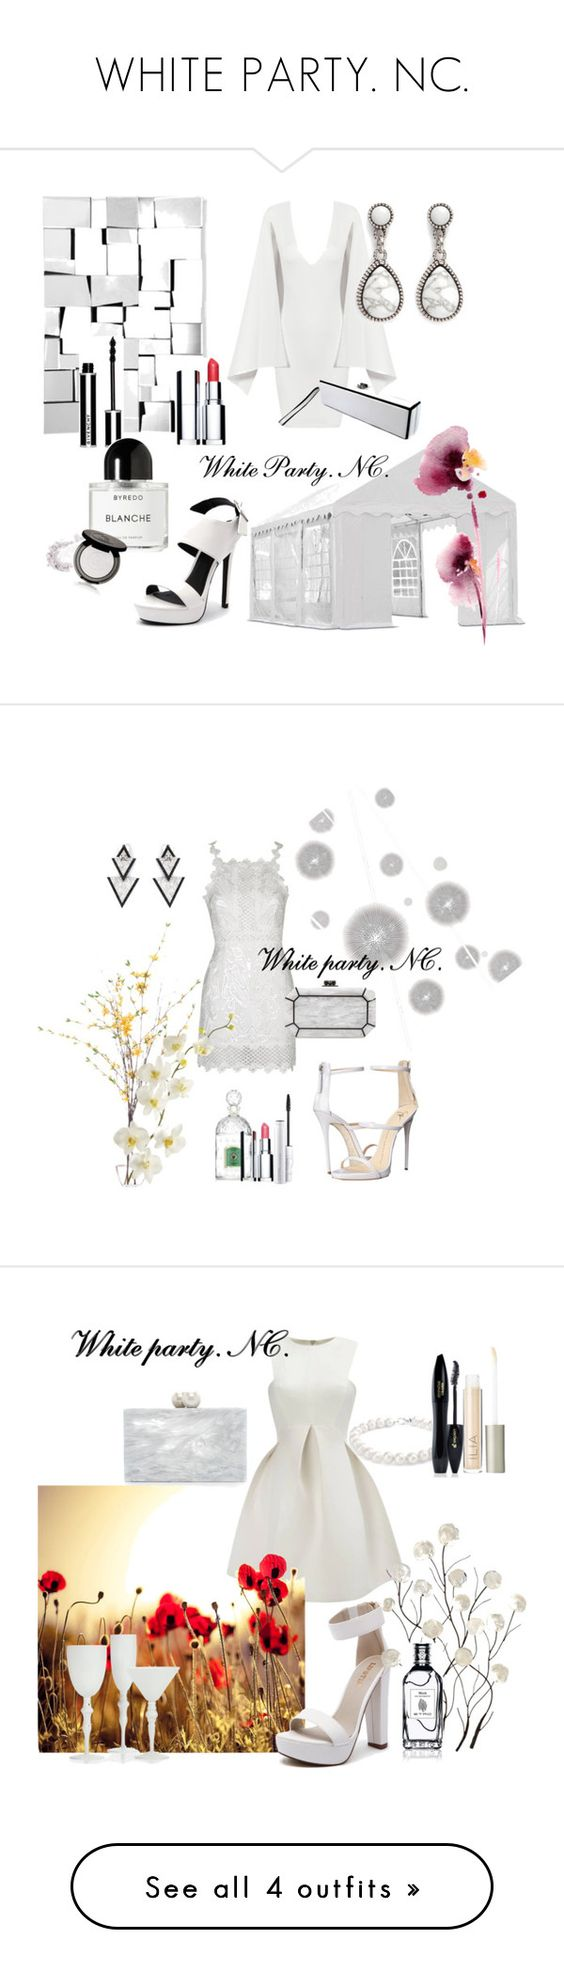 """WHITE PARTY. NC."" by noemicapozza ❤ liked on Polyvore featuring Posh Girl, Philippe Audibert, Verali, ShelterLogic, Zuo, Givenchy, Byredo, Chanel, Clarins and 3 Custom Color"